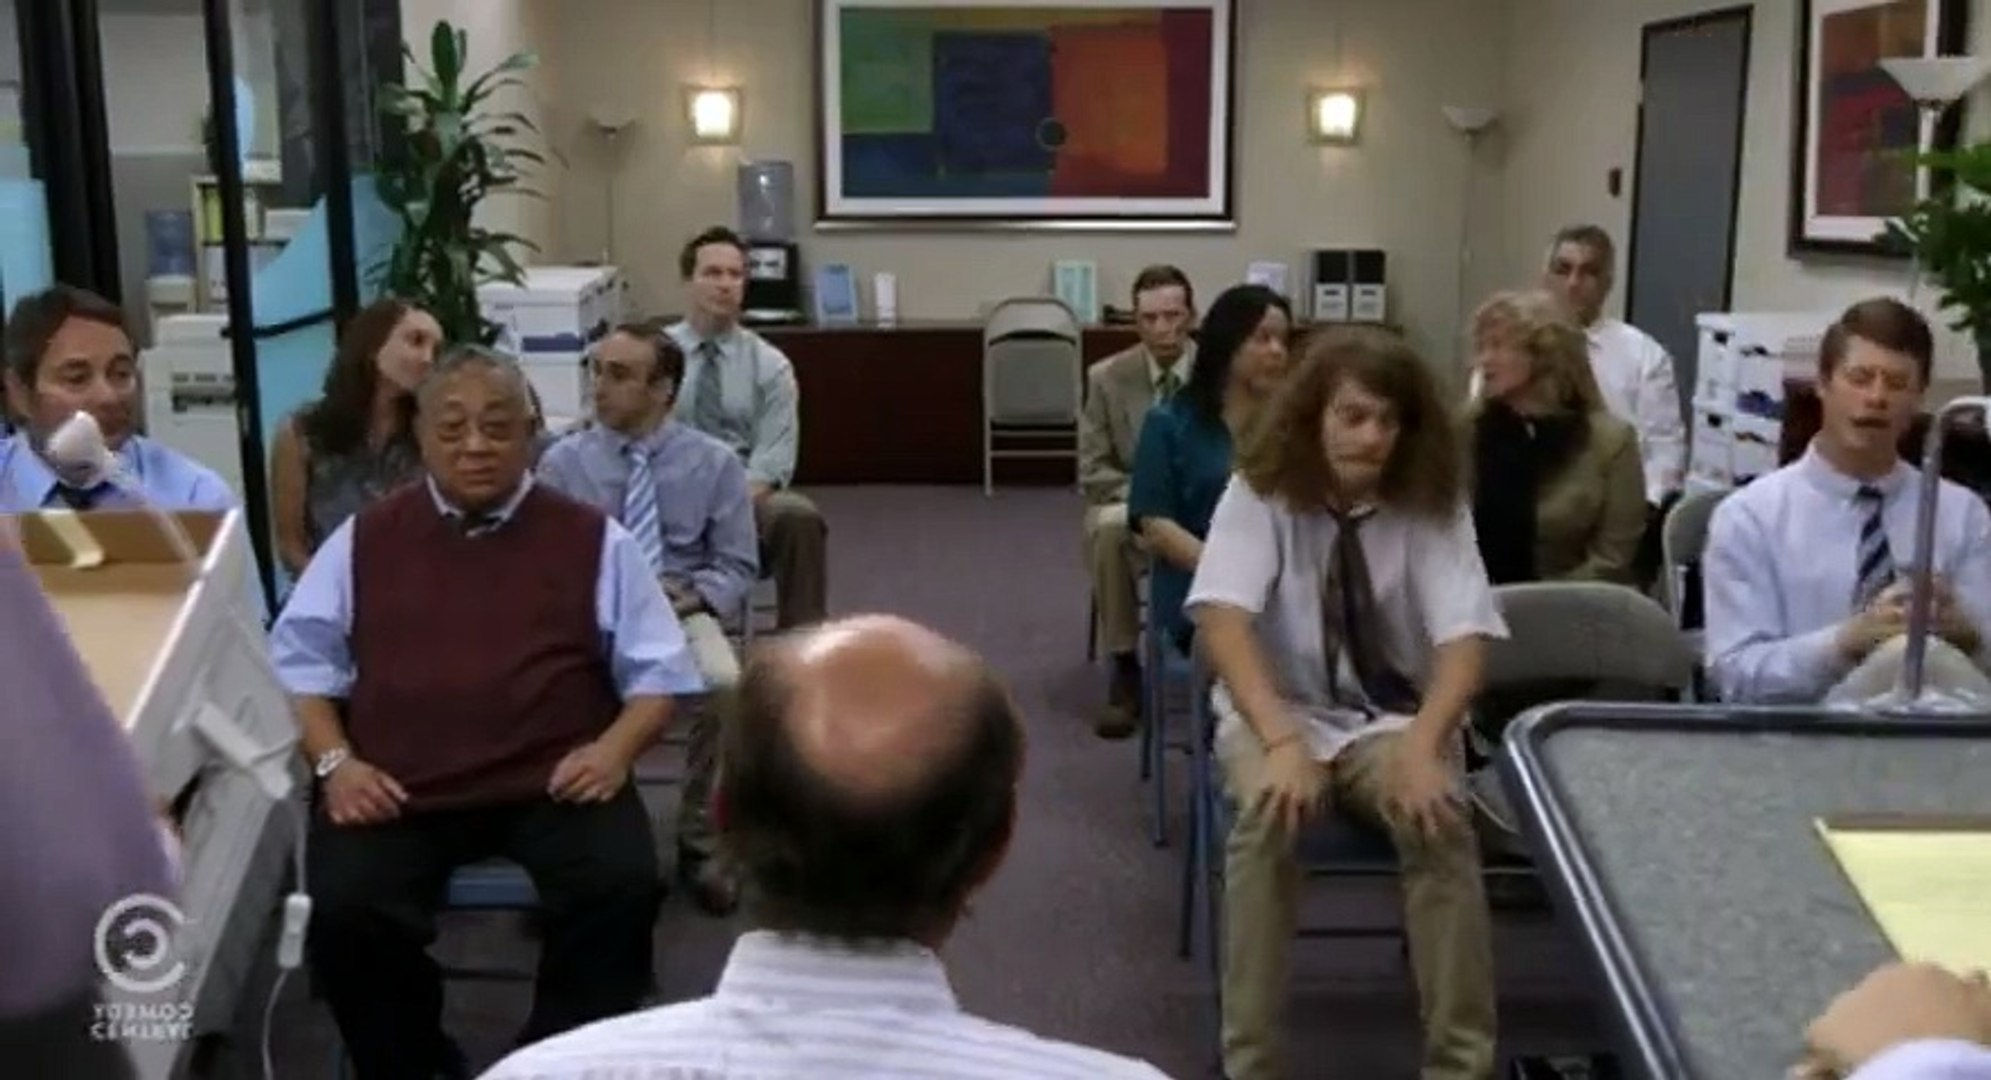 Workaholics S04xxE03 Snackers HD Watch